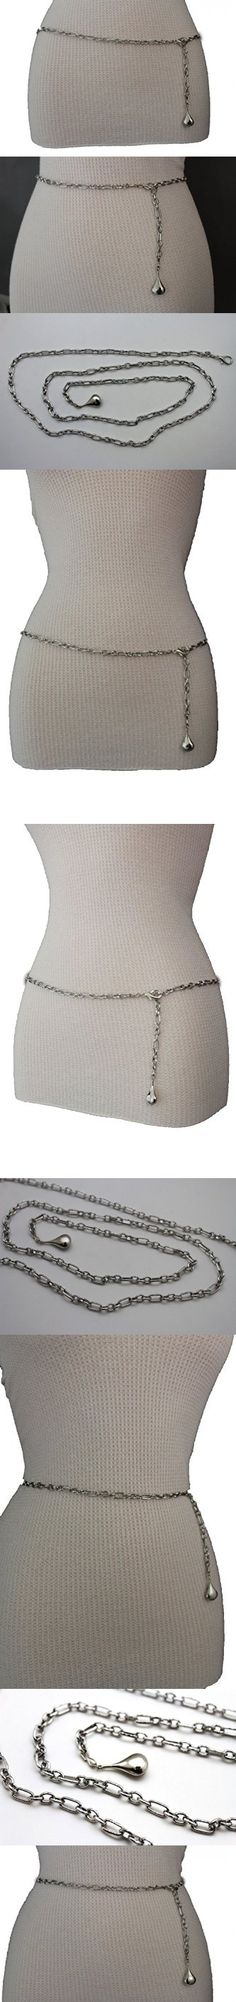 981ee565cc TFJ Women Fashion Belt Hip High Waist Silver Metal Chain Links Plus Size M  L XL